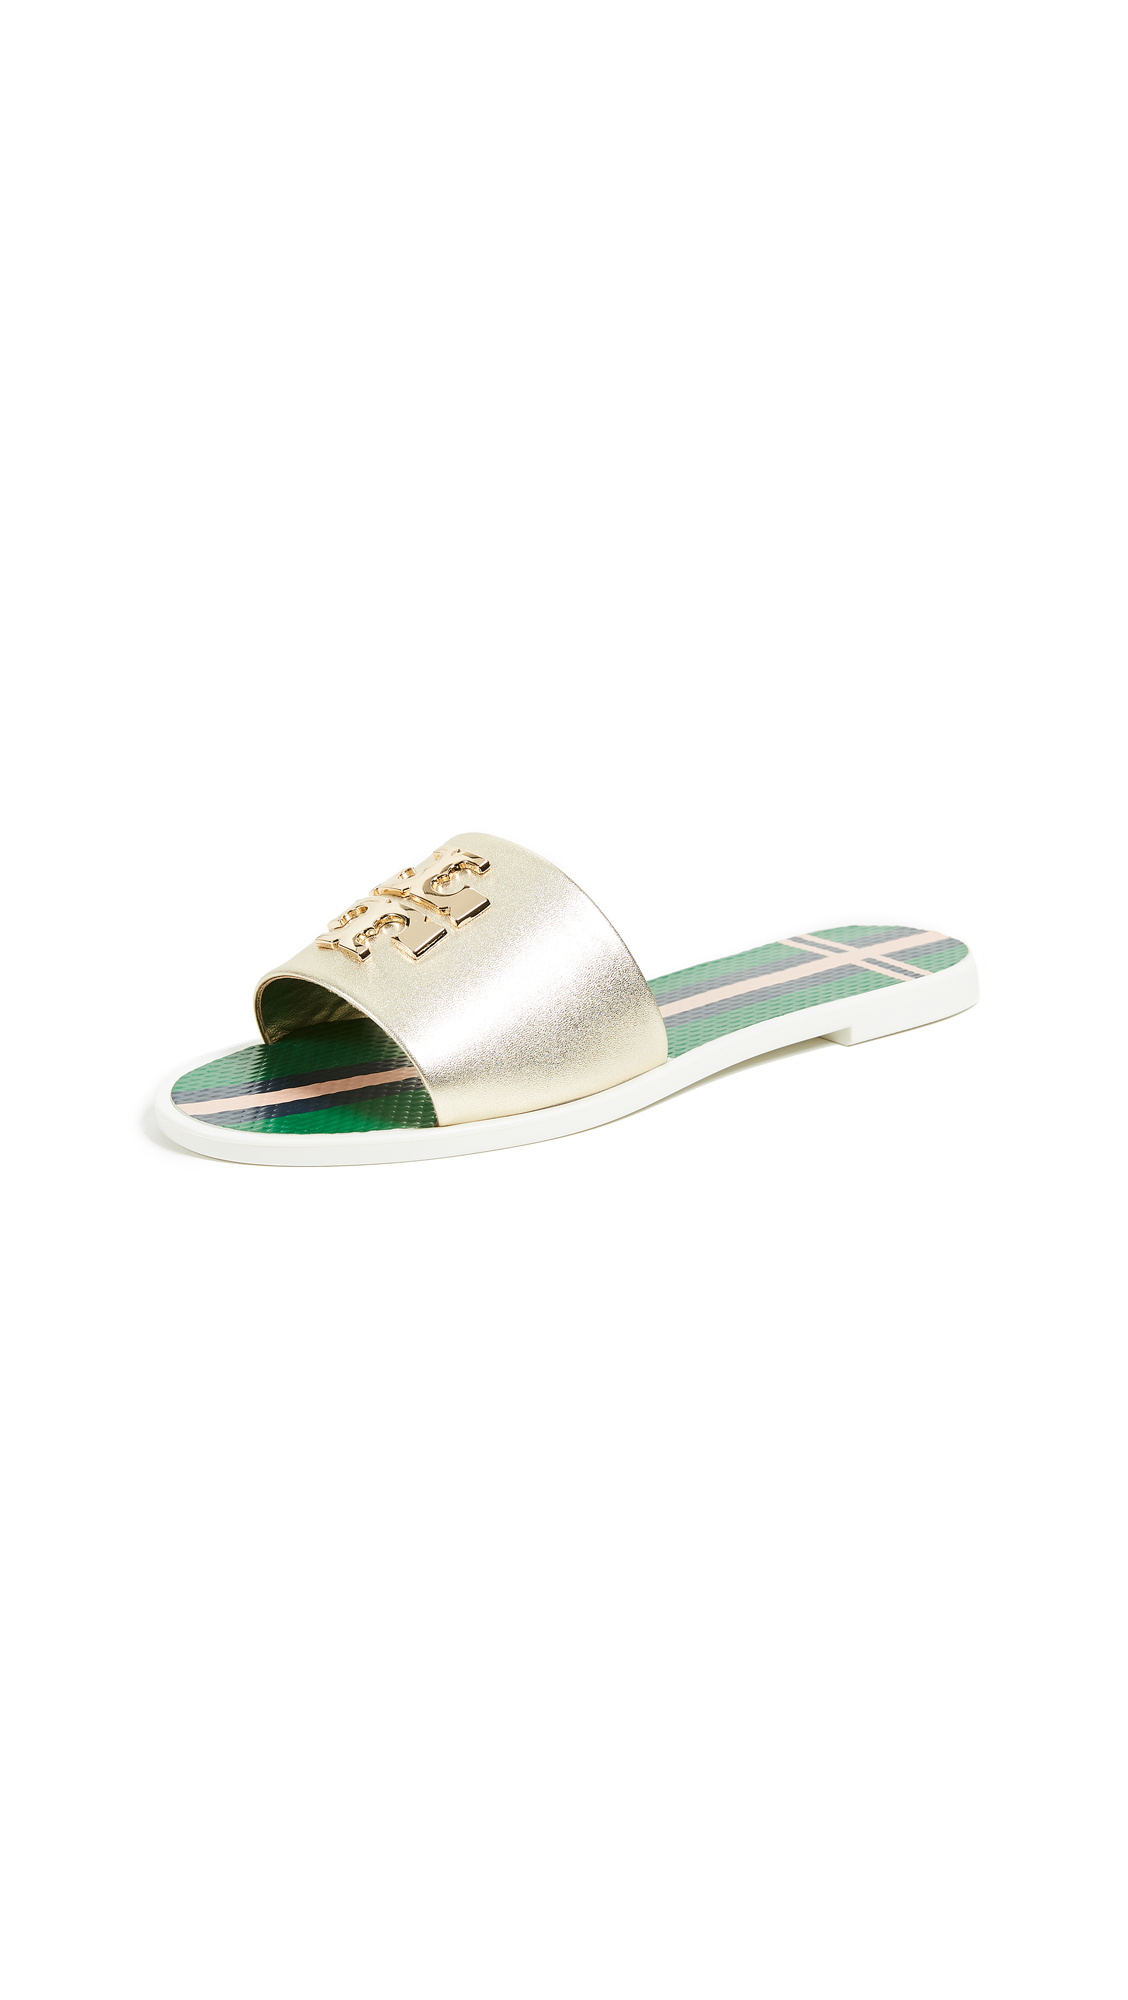 Tory Burch Logo Jelly Slide